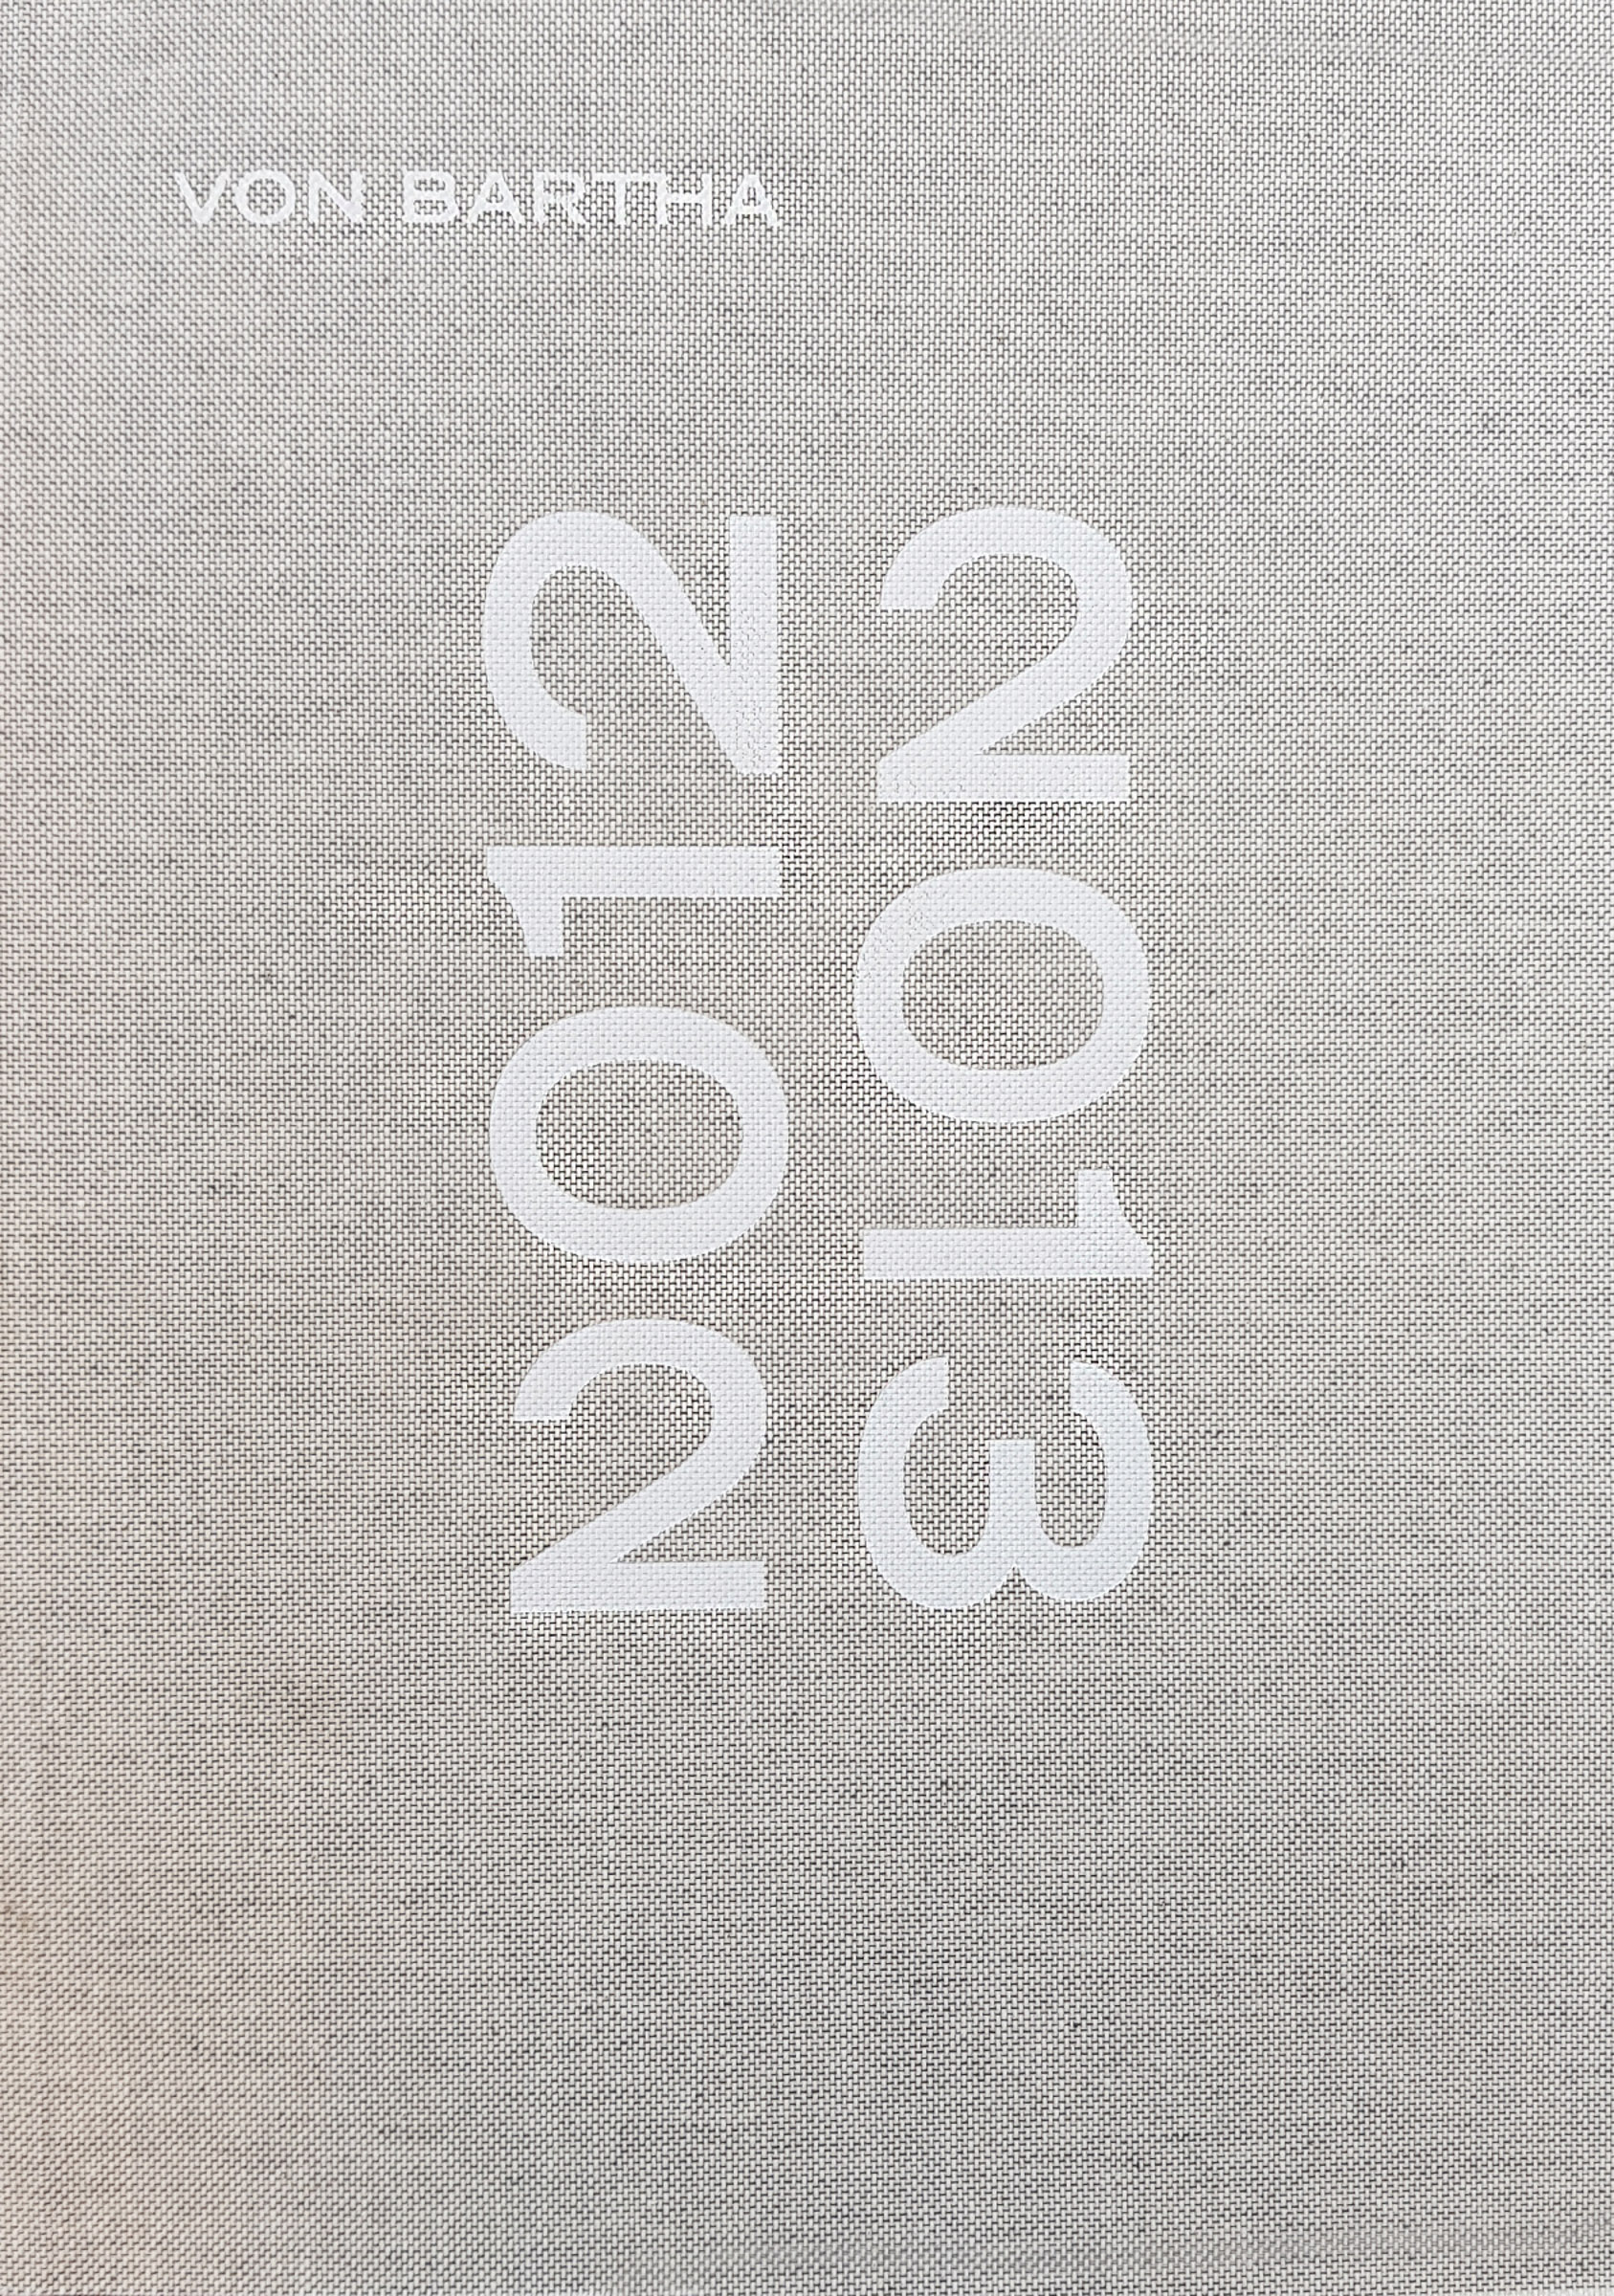 Book no. 18: Yearbook 2012/2013